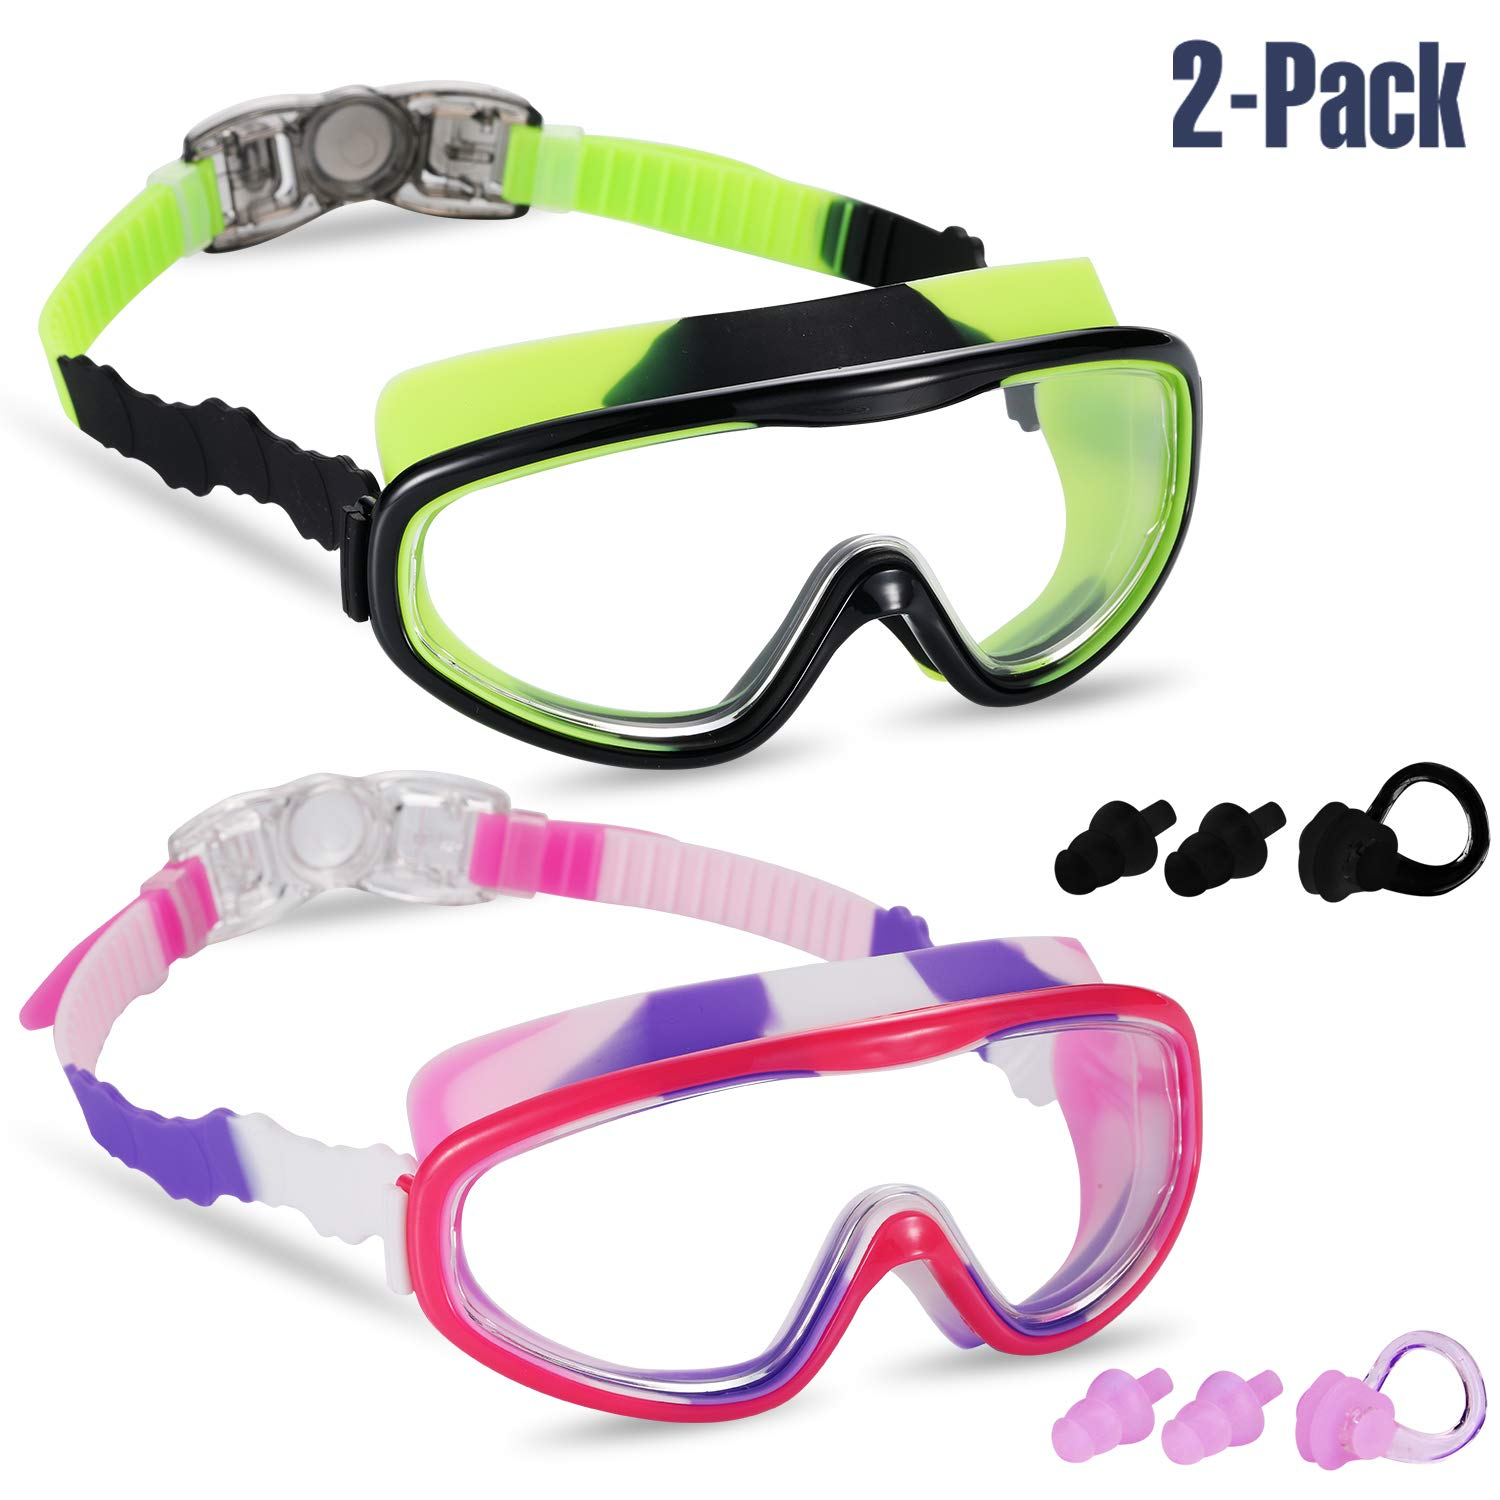 Spinosaurus Kids Swim Goggles Anti-Fog,UV Protection blue green,pink white No Leaking Coated Lens,with case and earplugs HD swim goggles for kids youth and Teenagers fashionable Age 3-15 years